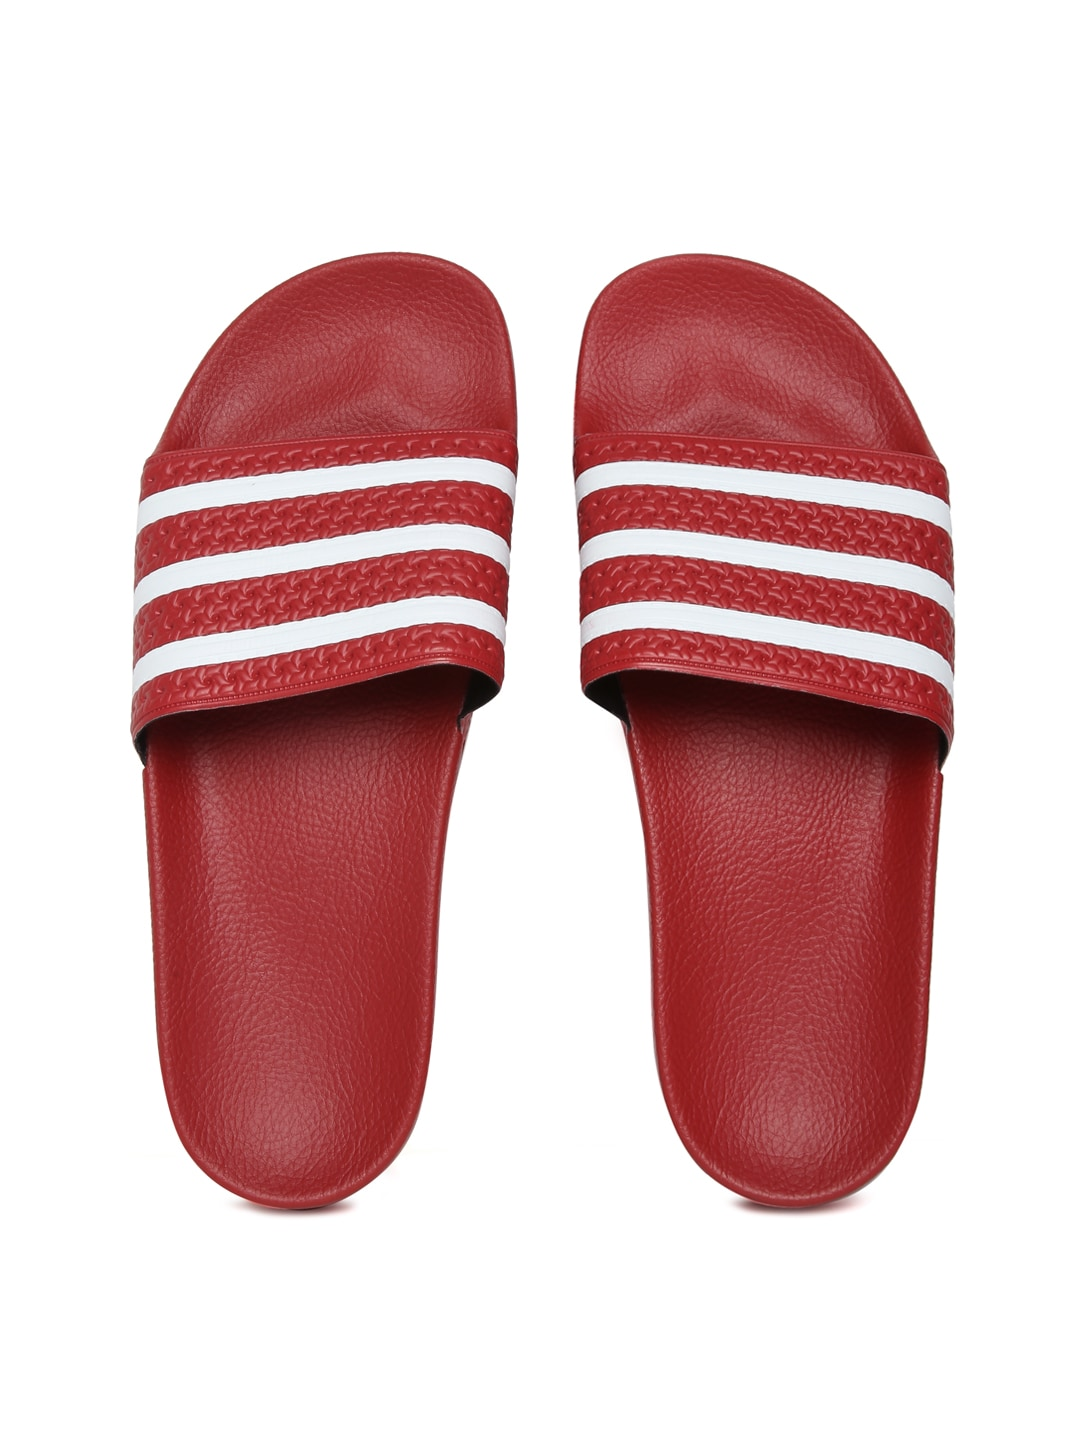 a6f95899f Adidas Original Bat Tights Scarves Flip Flops - Buy Adidas Original Bat  Tights Scarves Flip Flops online in India